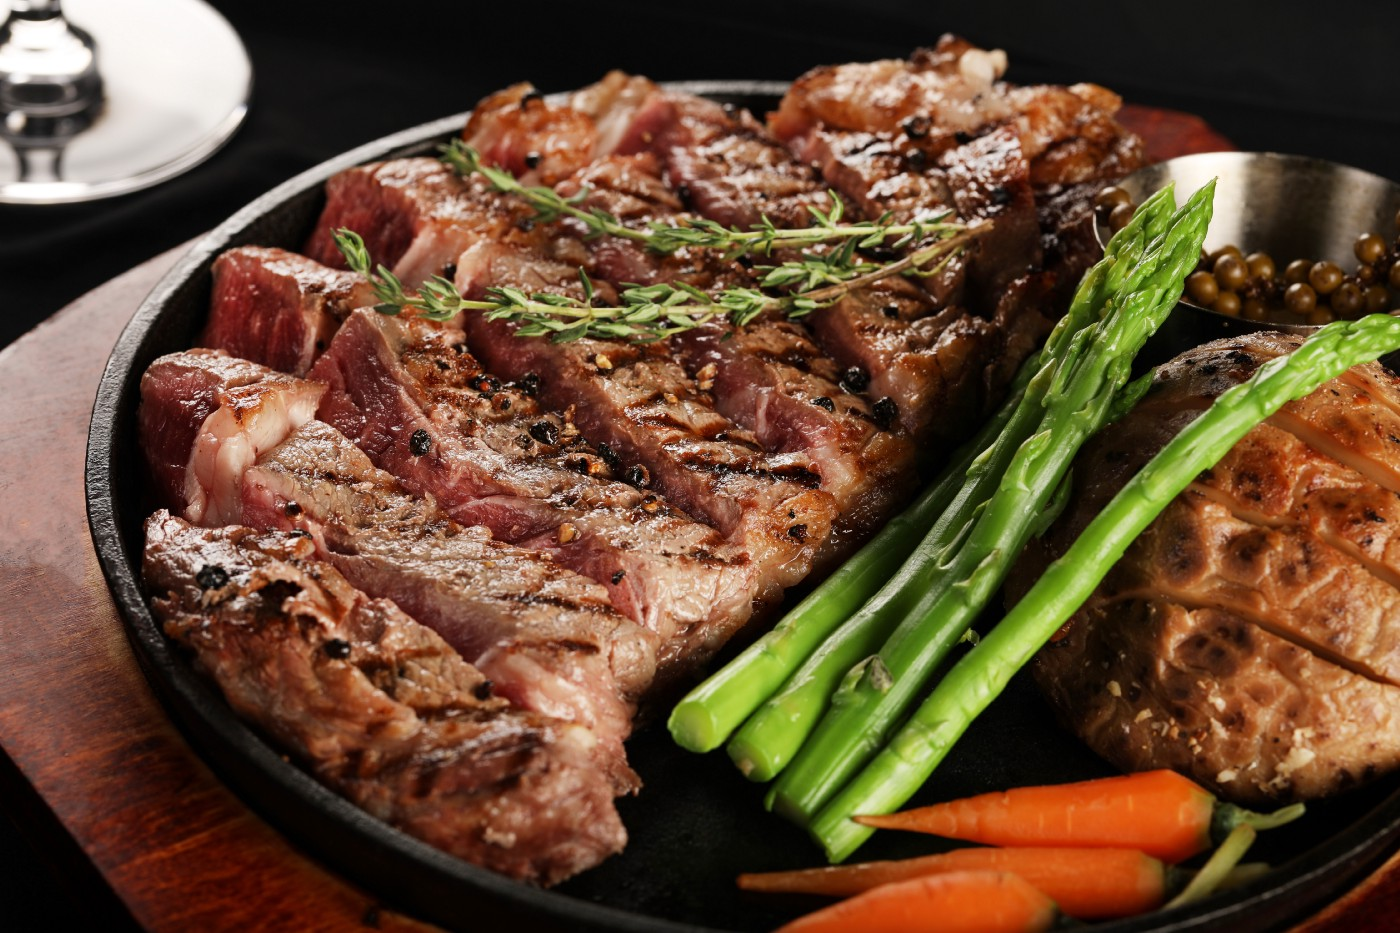 A big beef steak dinner with asparagus and carrots